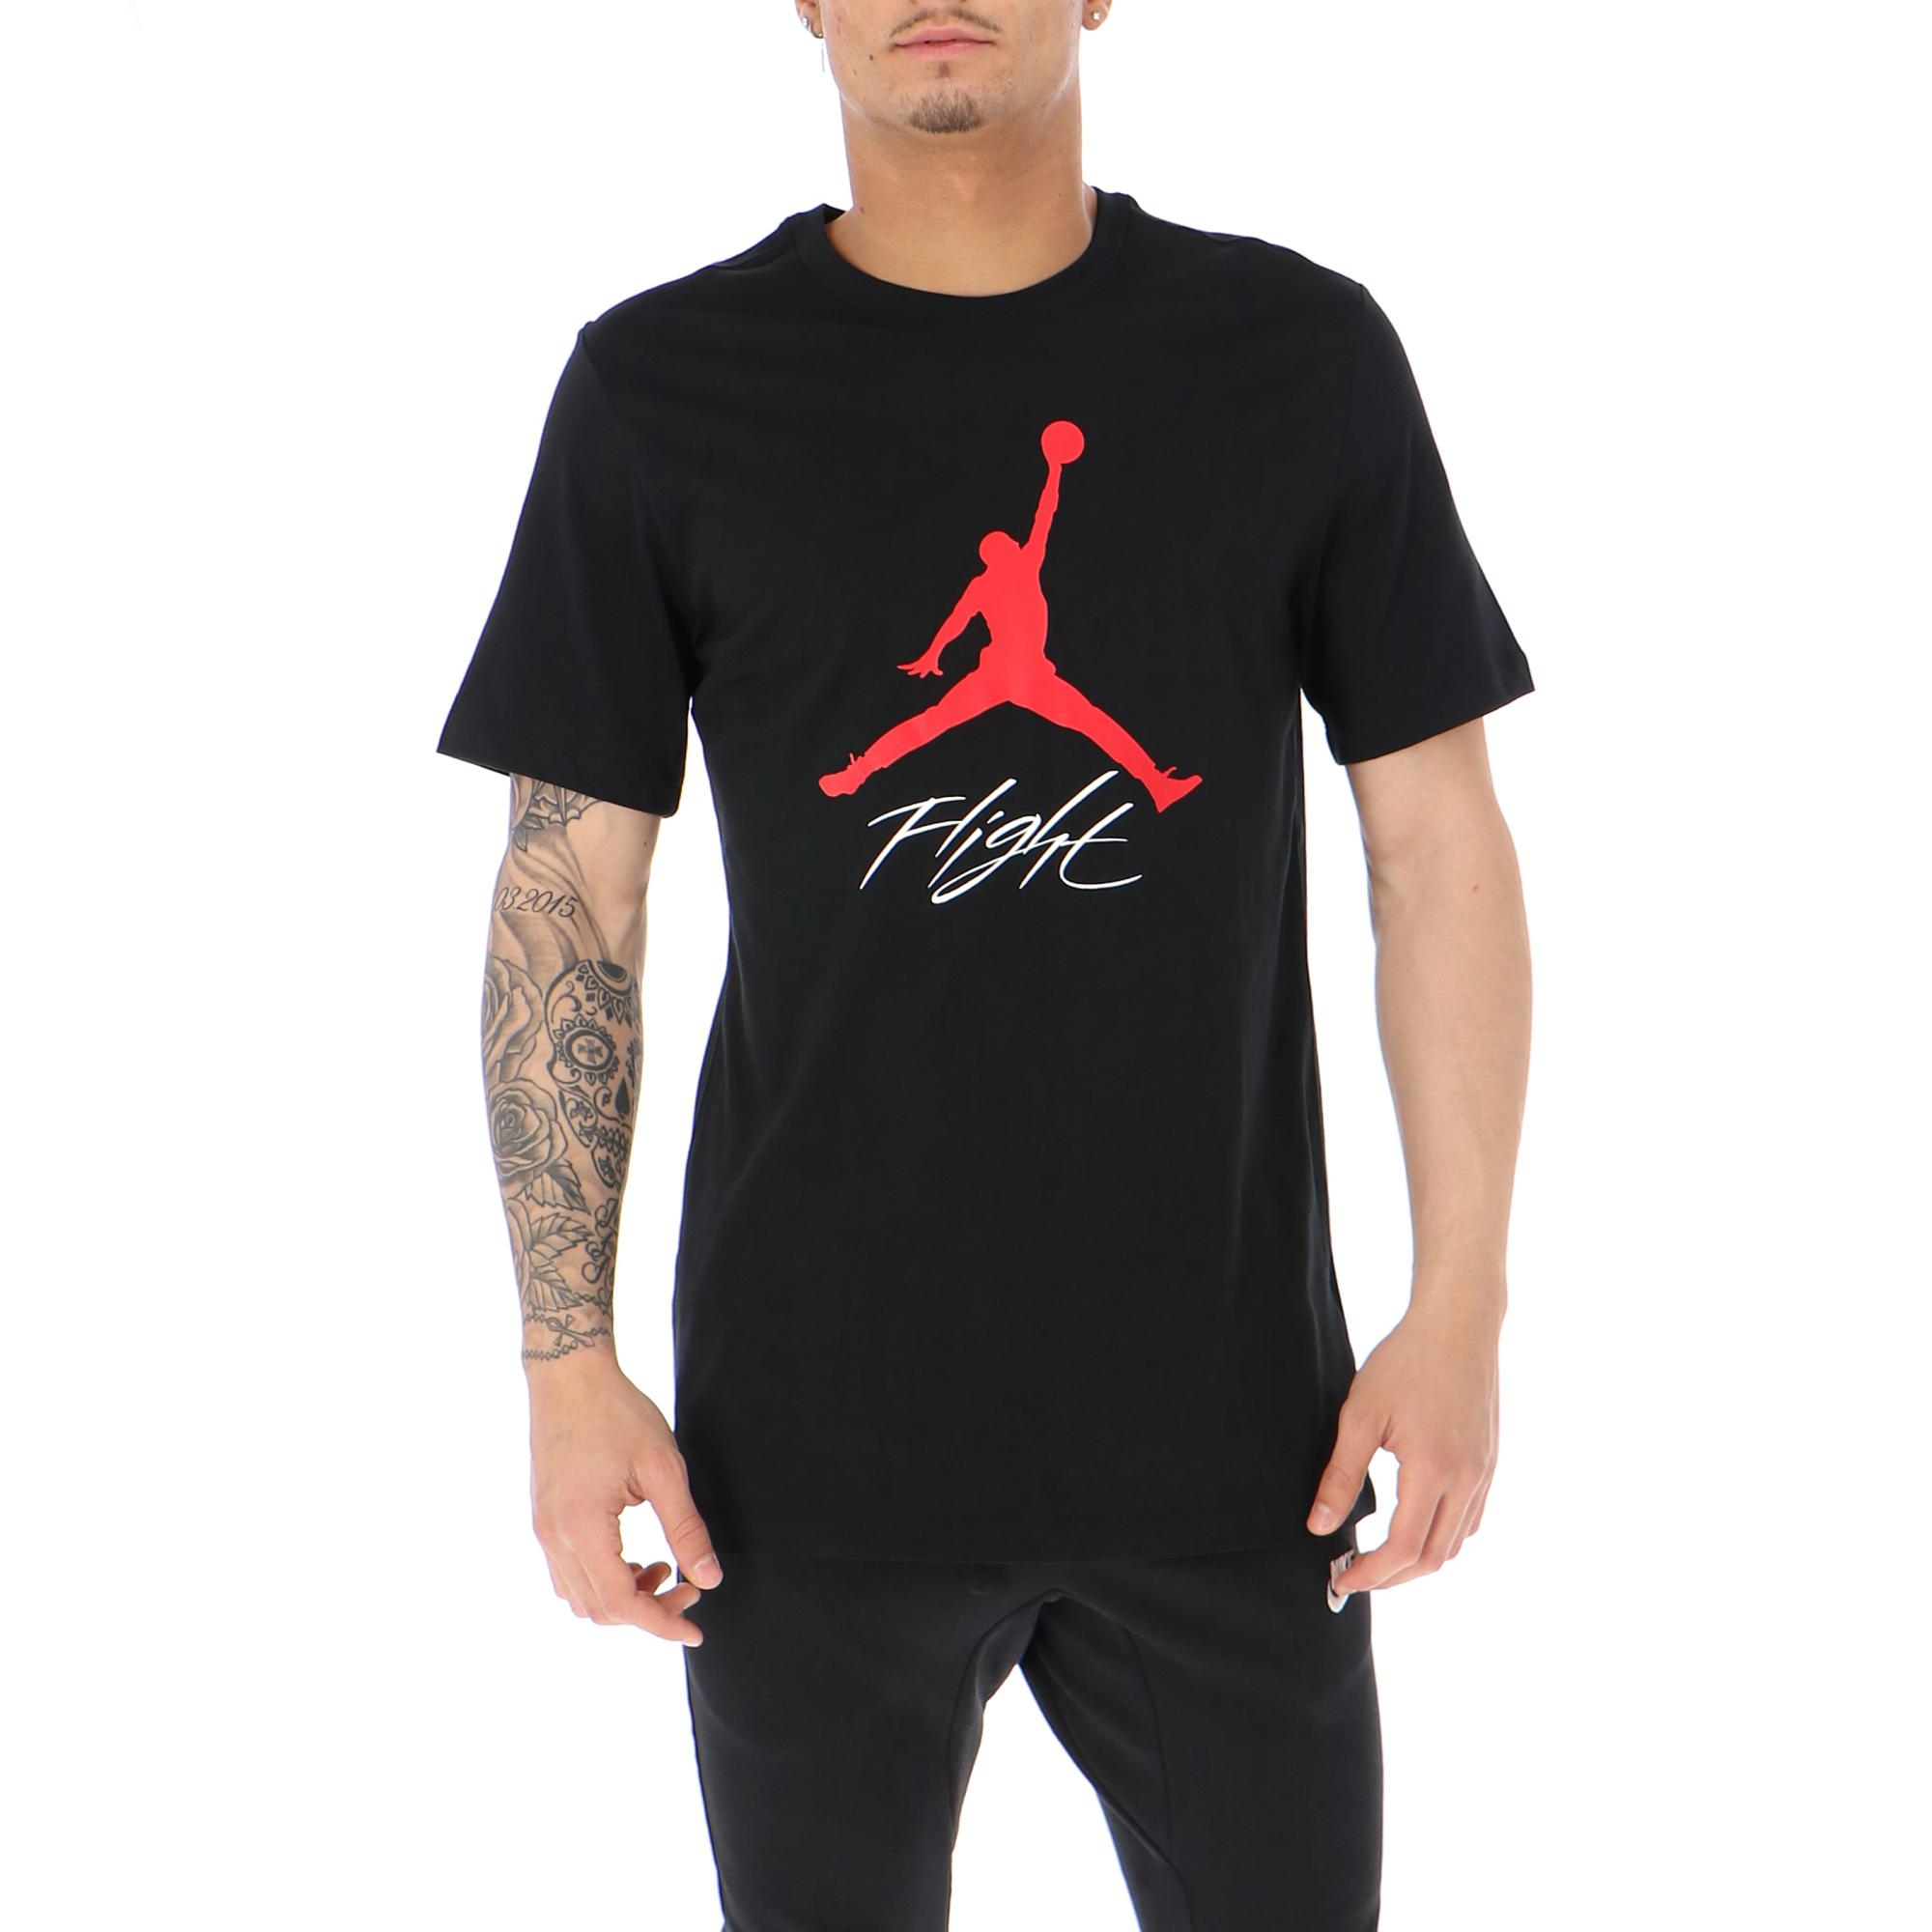 8577ca7340e Jordan Jumpman Flight Hbr Tee<br/> Black Gym Red | Treesse